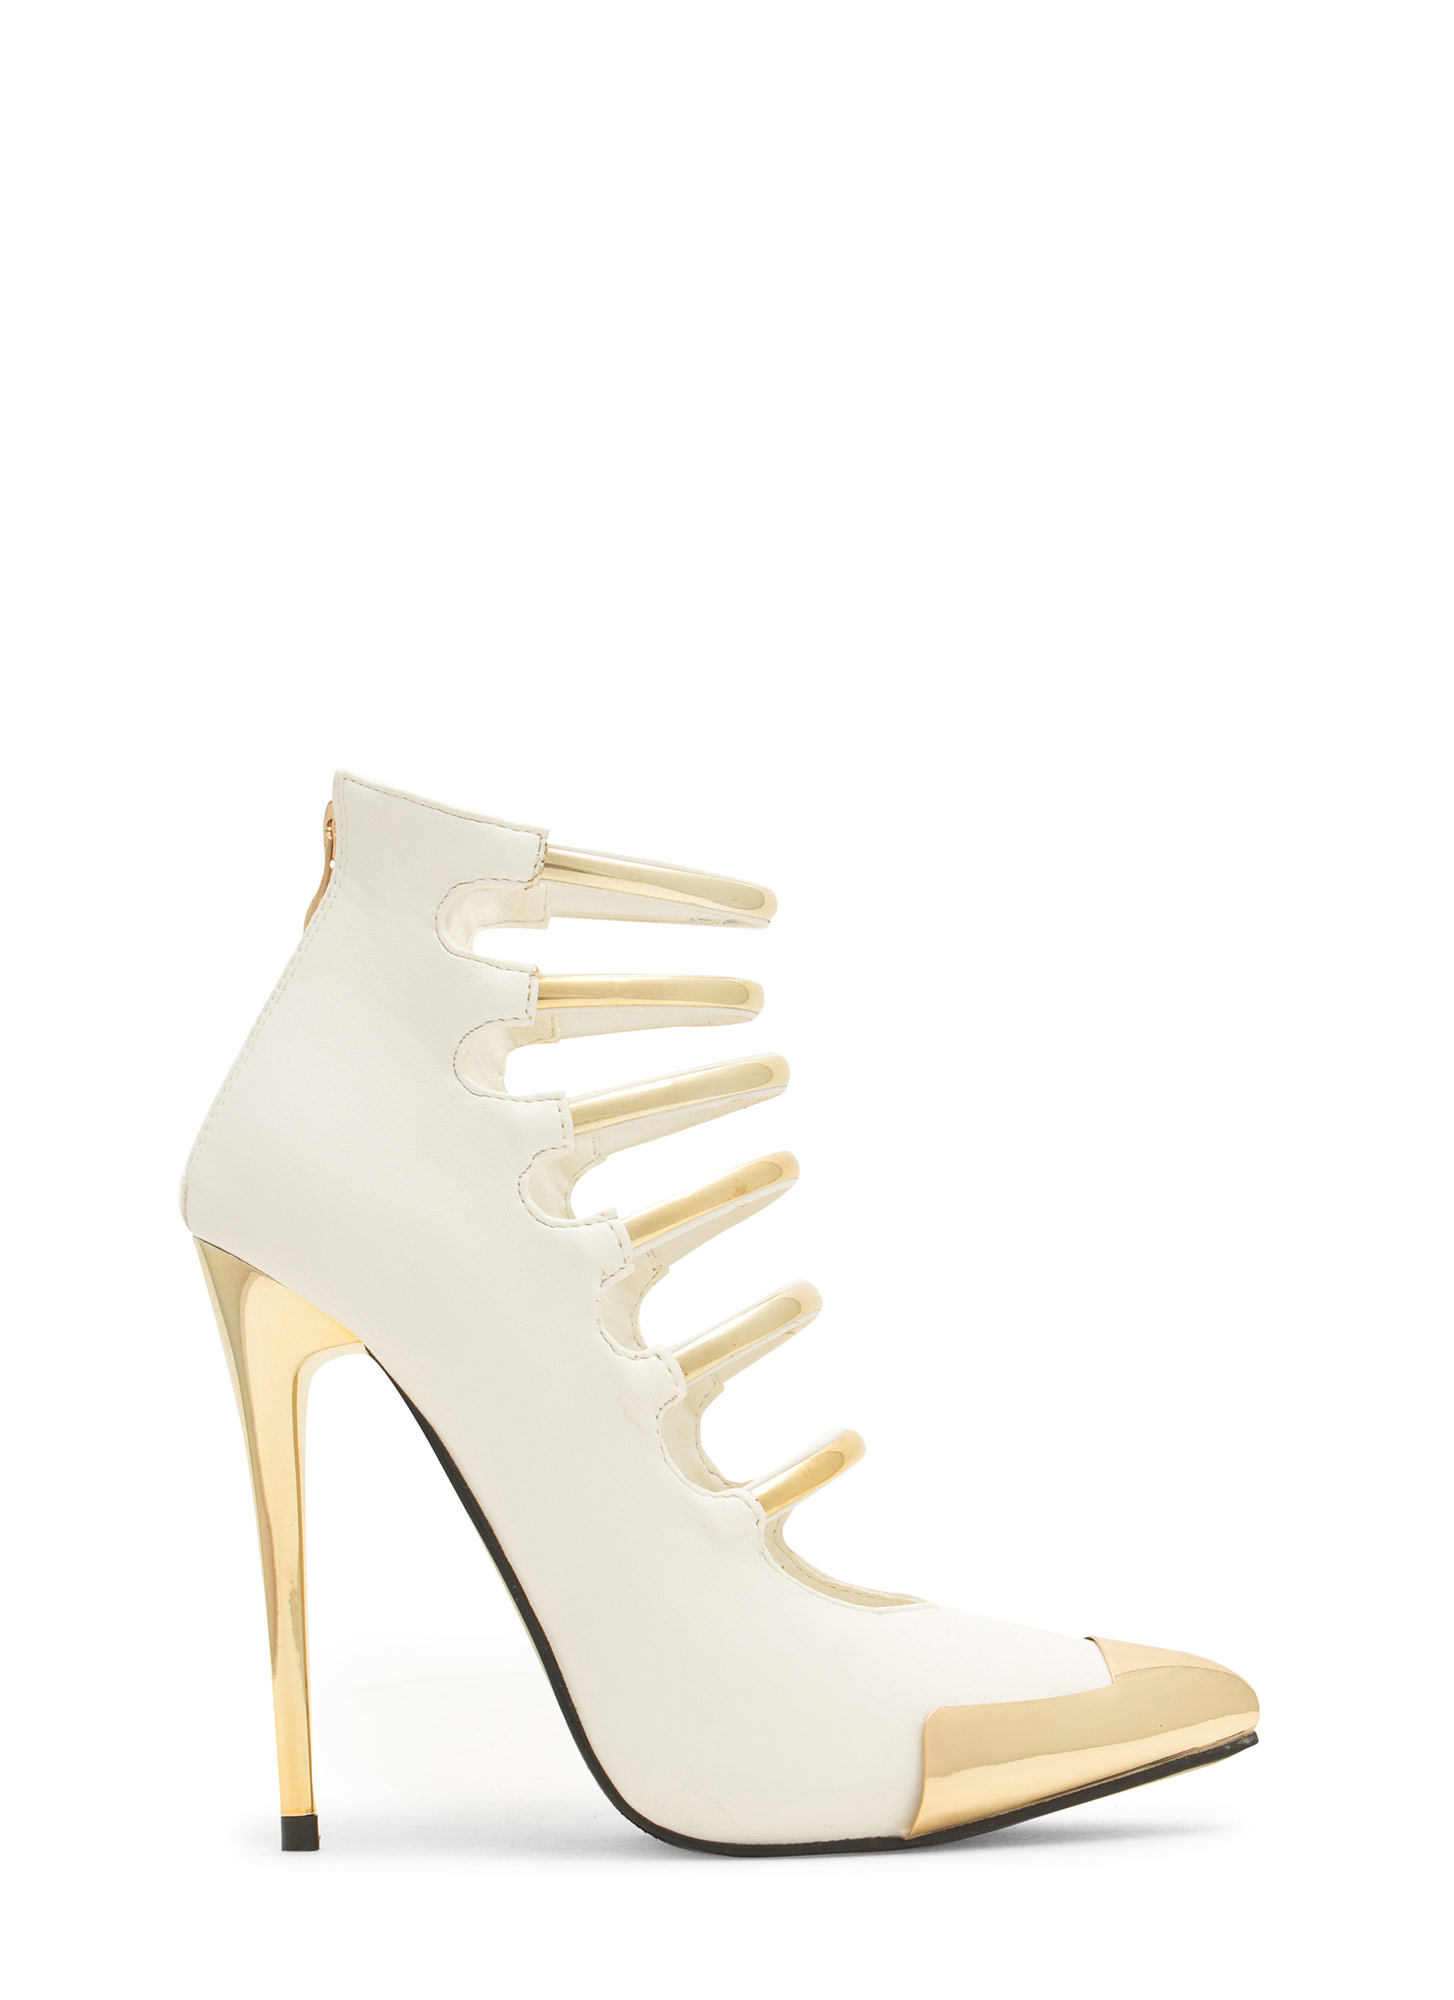 Laddered Gleam Capped Heels WHITE